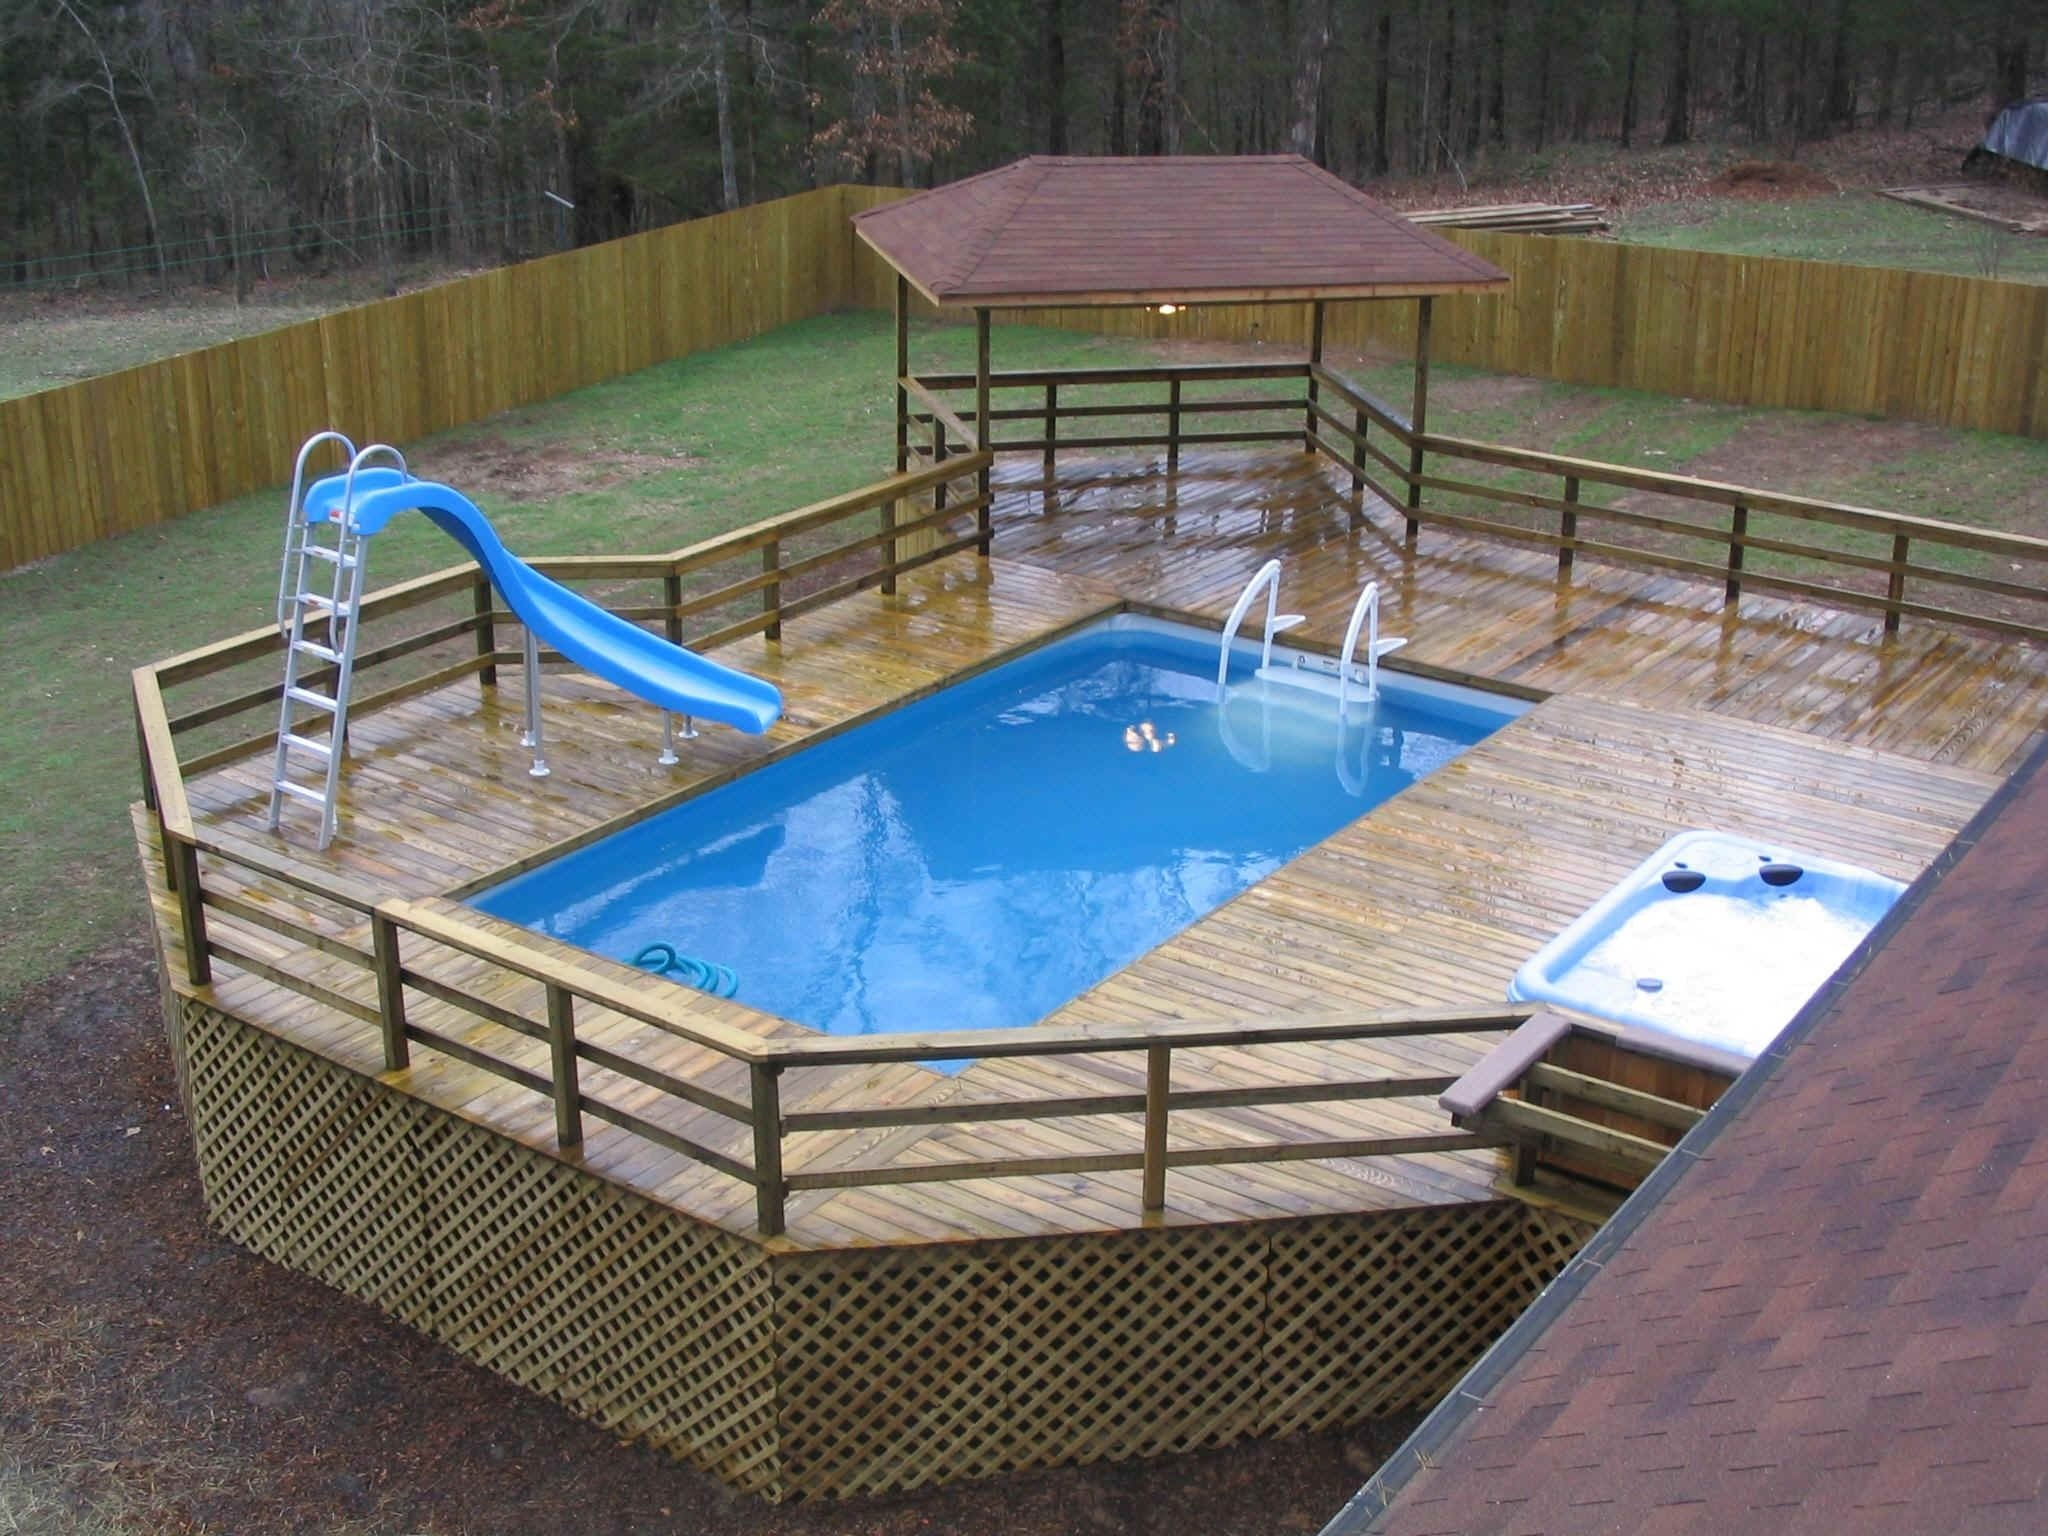 10 Trendy Deck Ideas For Above Ground Pools garden ideas deck ideas for above ground pools above ground pool 2021